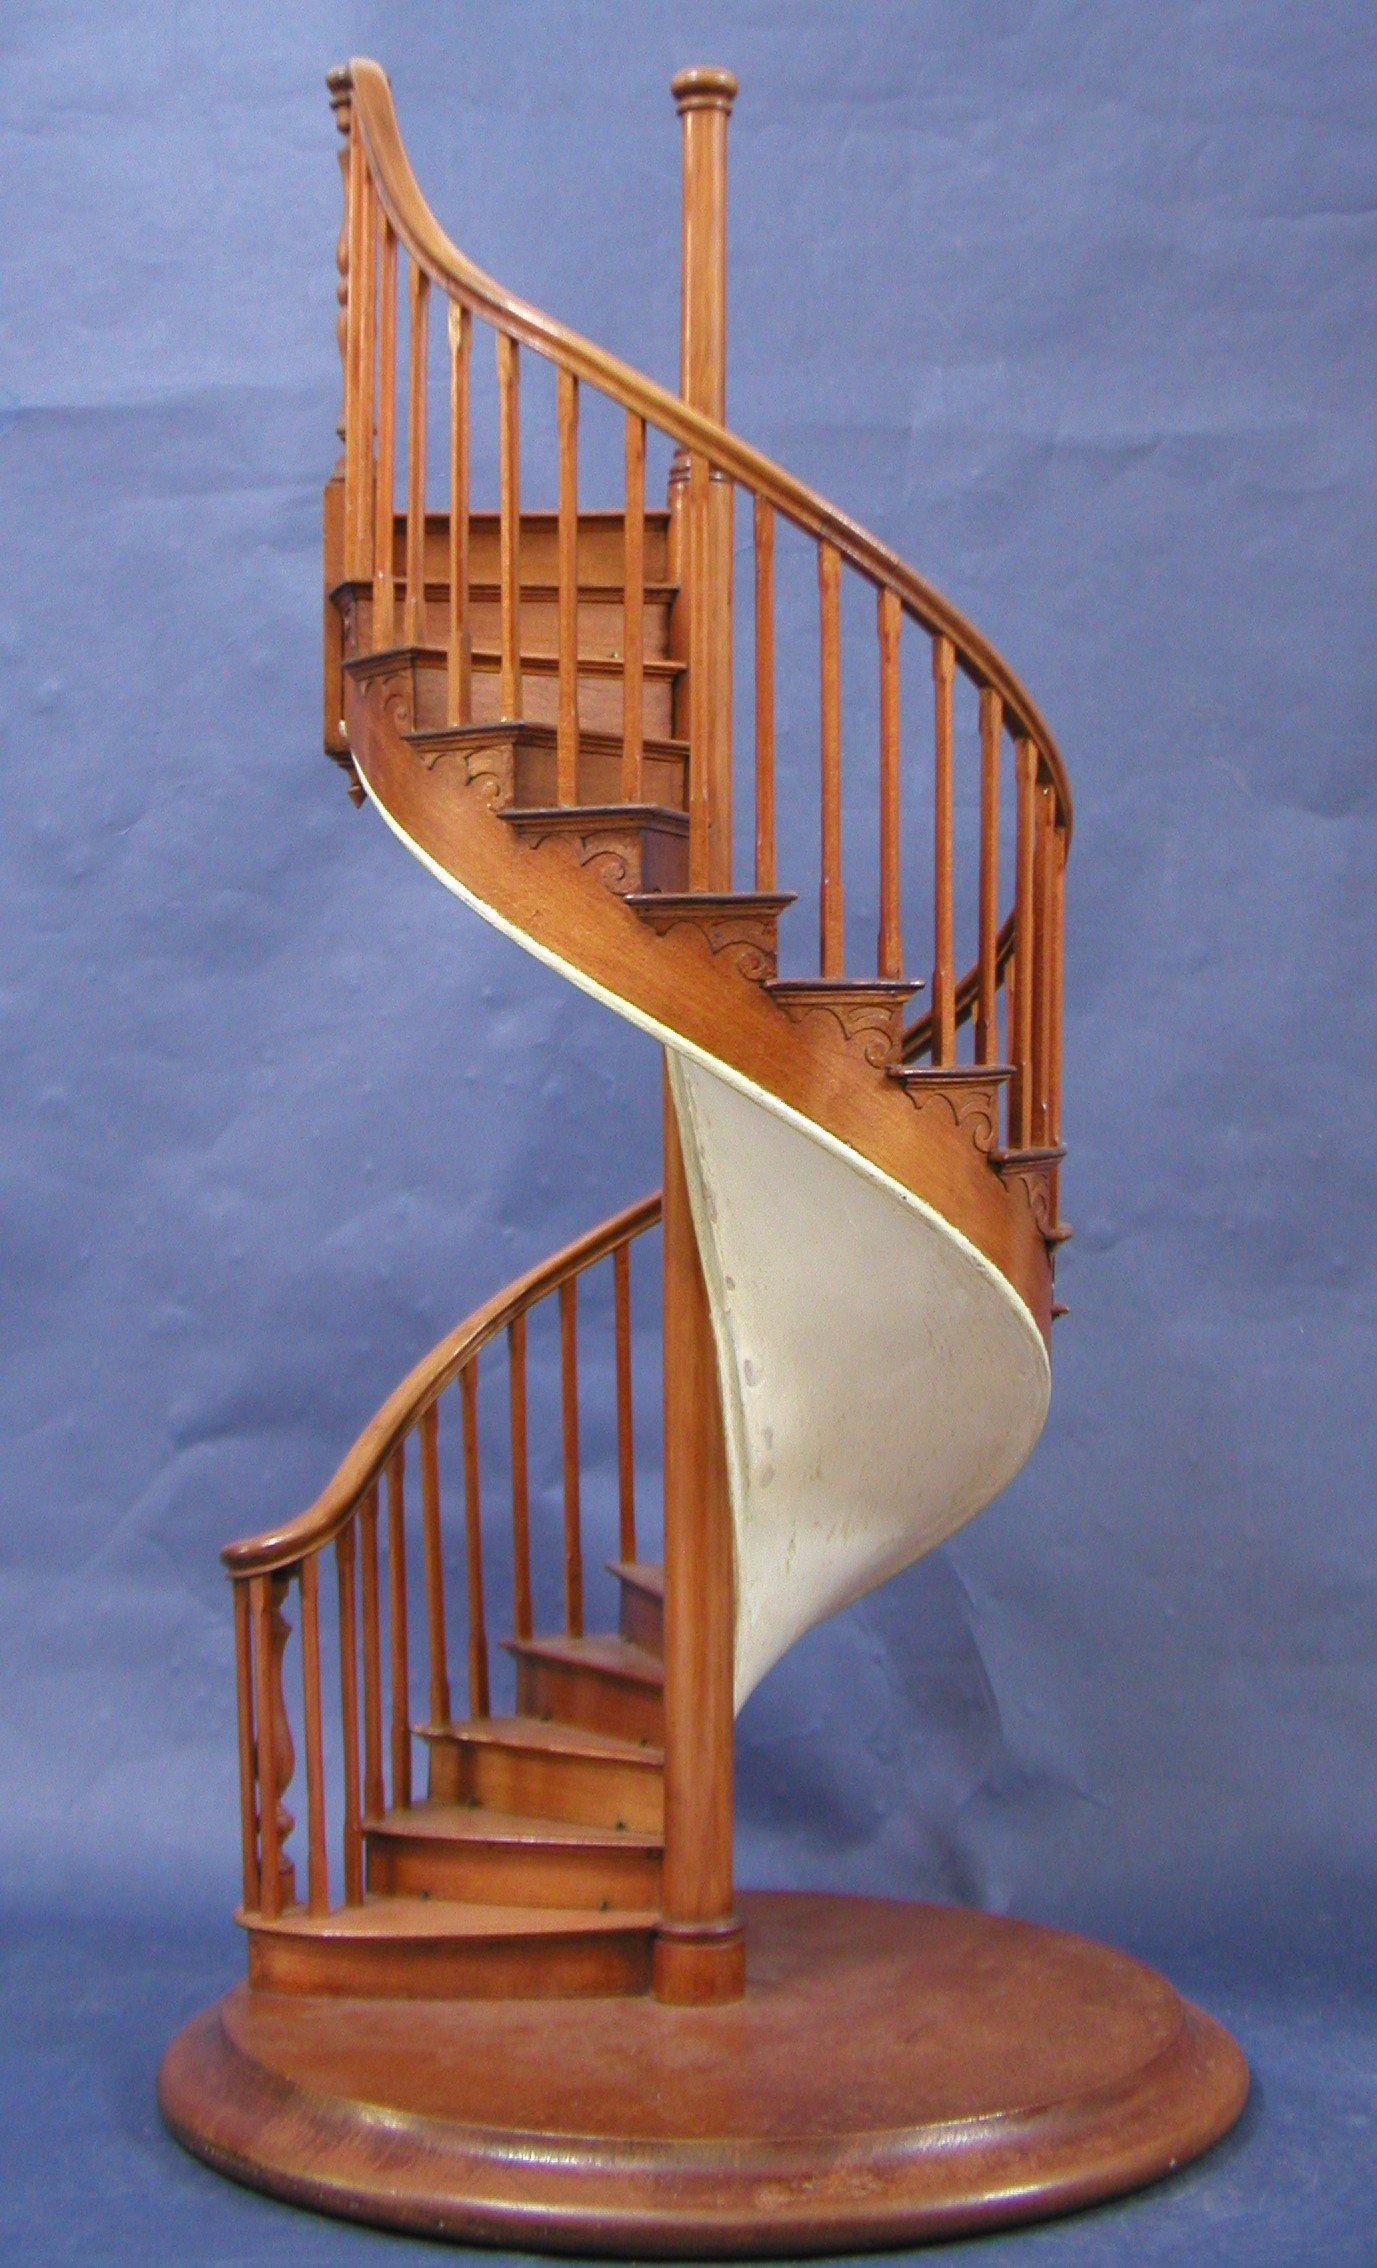 File:Staircase, Model (AM 1962.79 4)